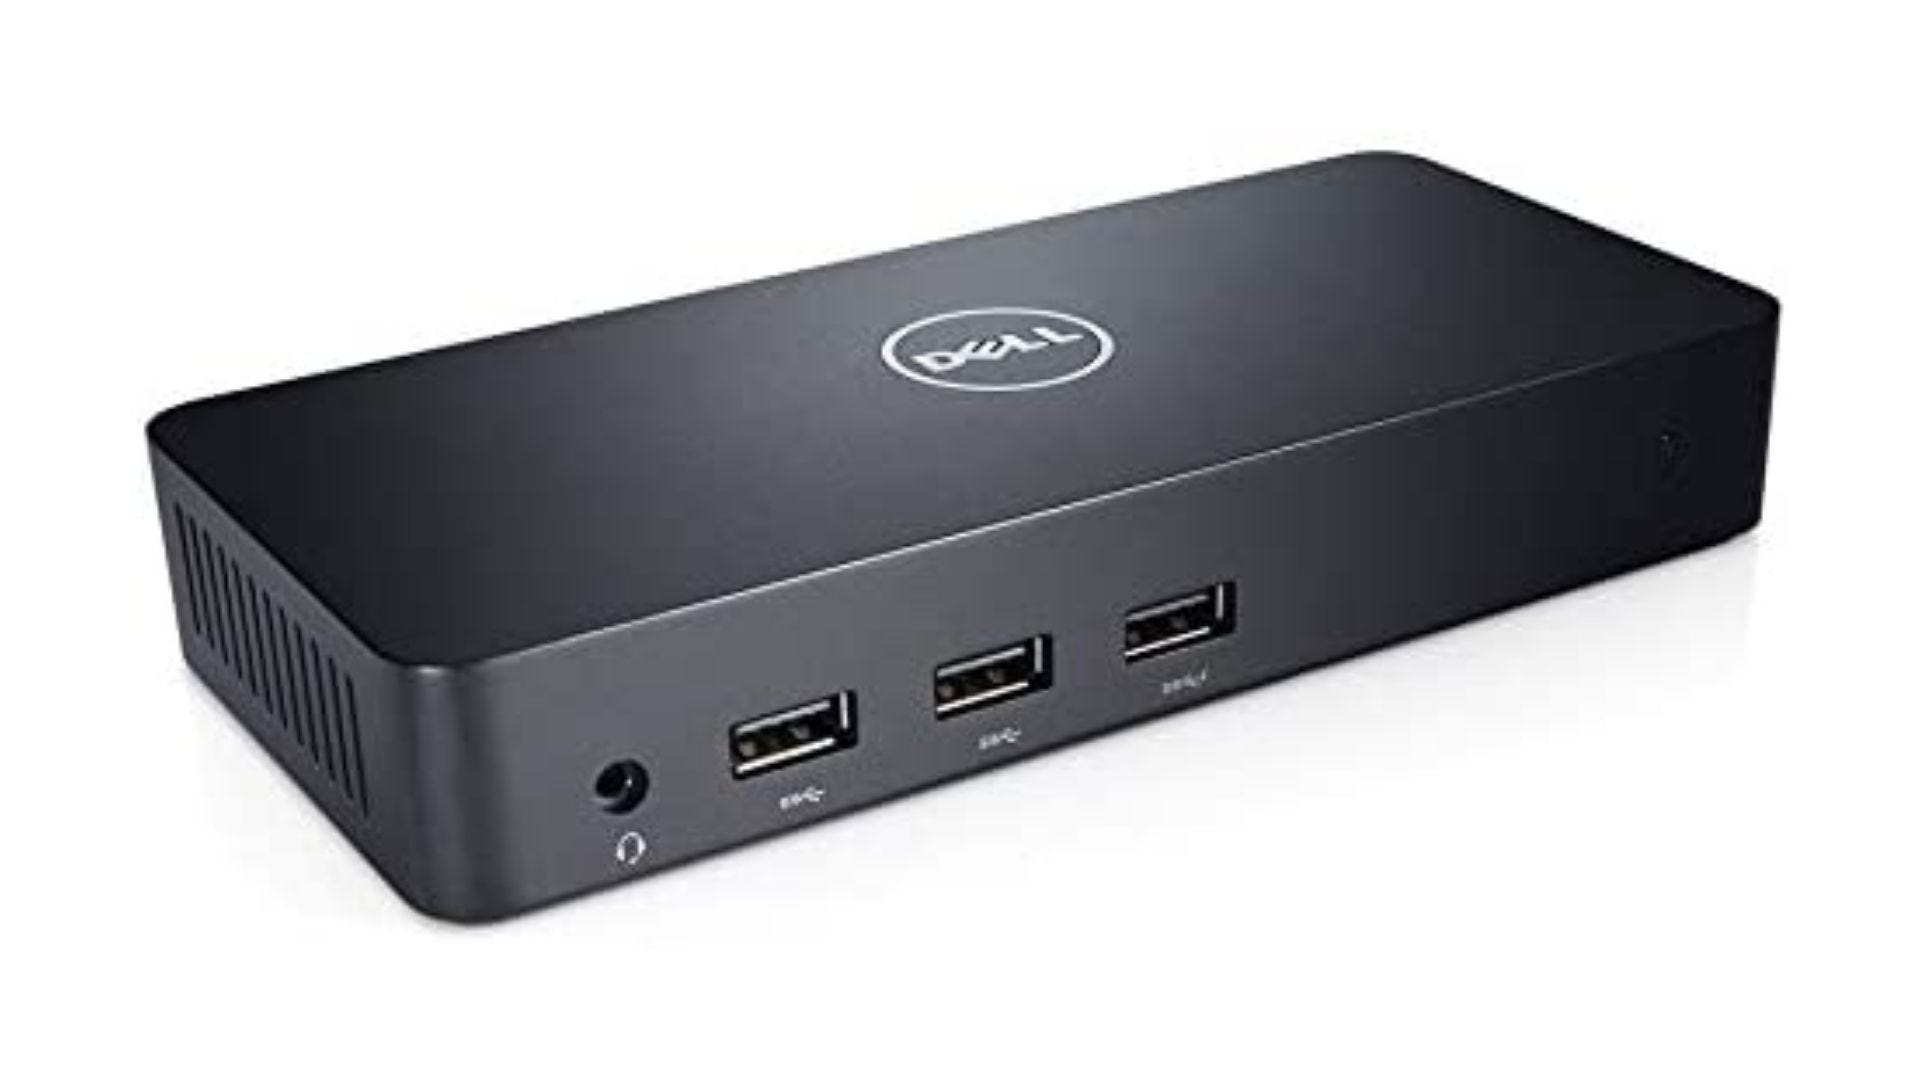 Dell USB 3.0 Ultra HD_4K Docking Station for Laptops